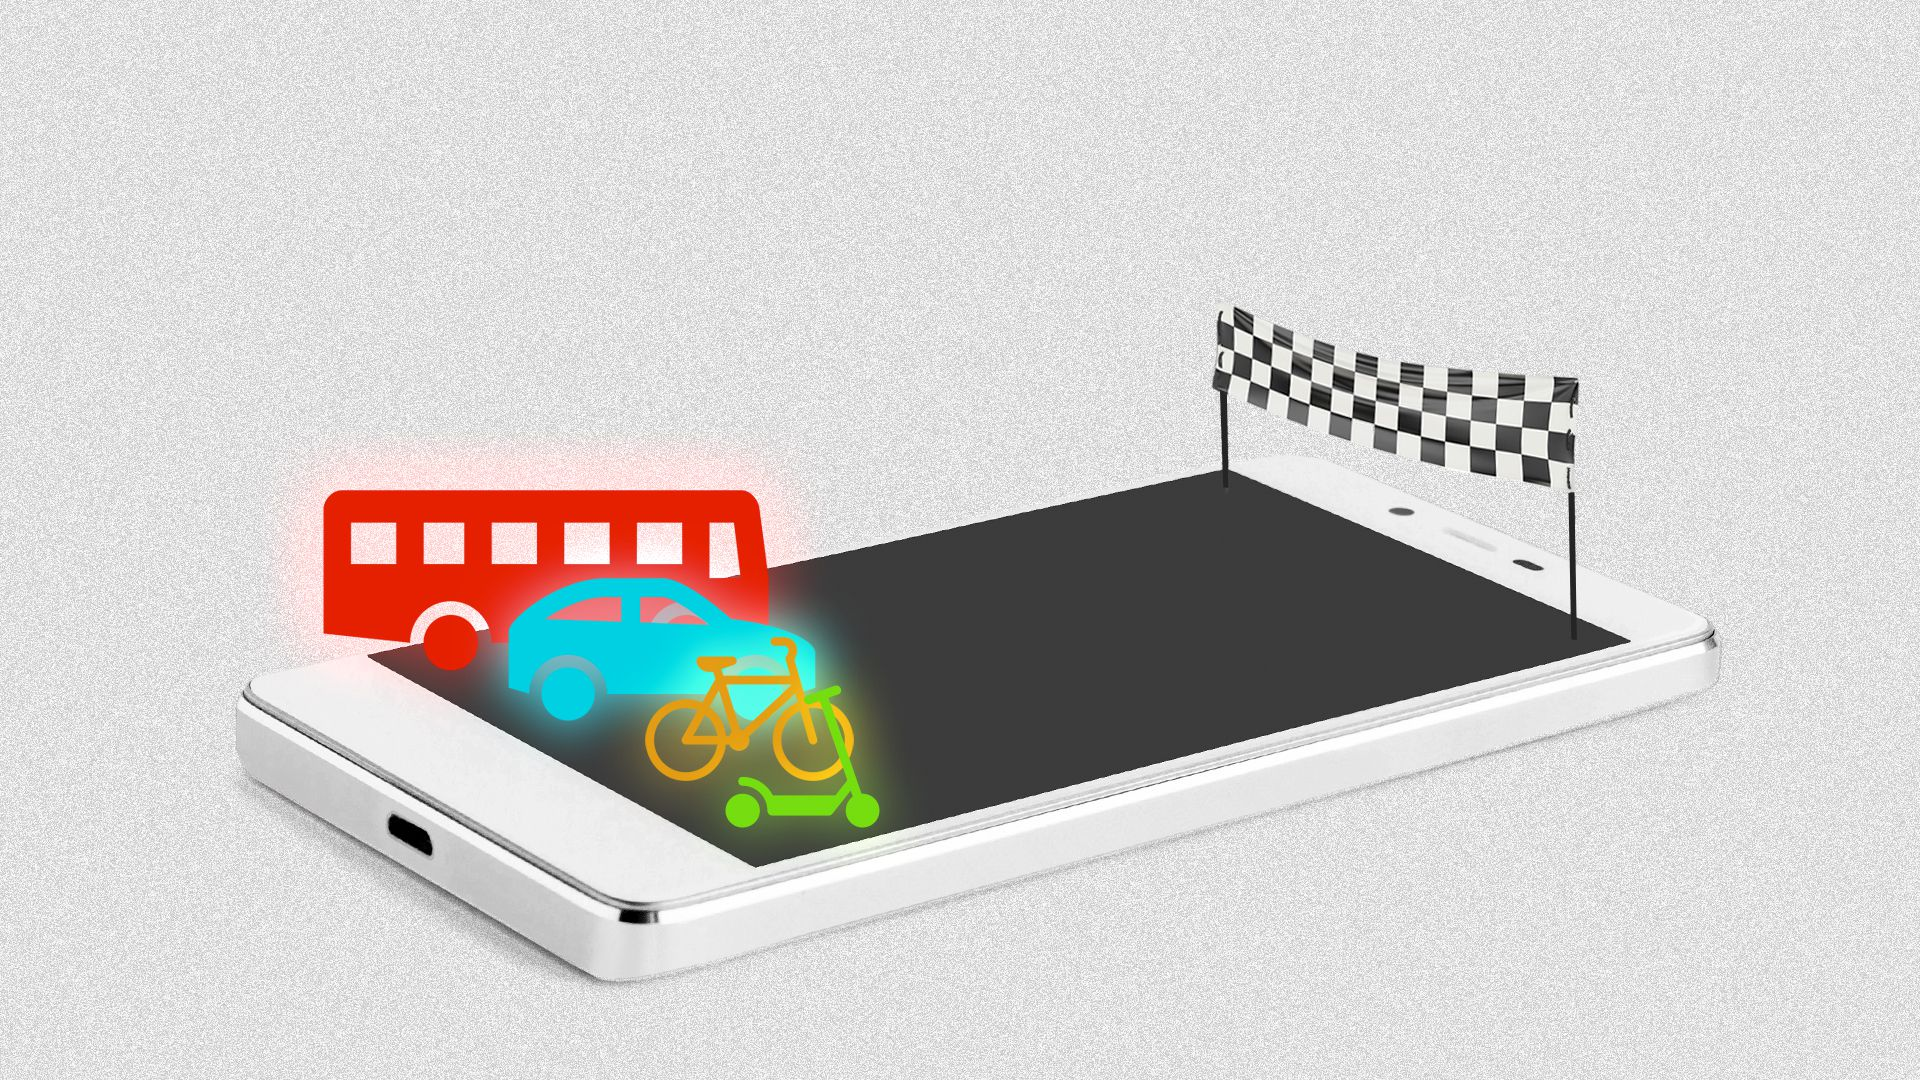 Illustration of a cellphone as a race track with a bus, a car, a bicycle and a scooter about to race.